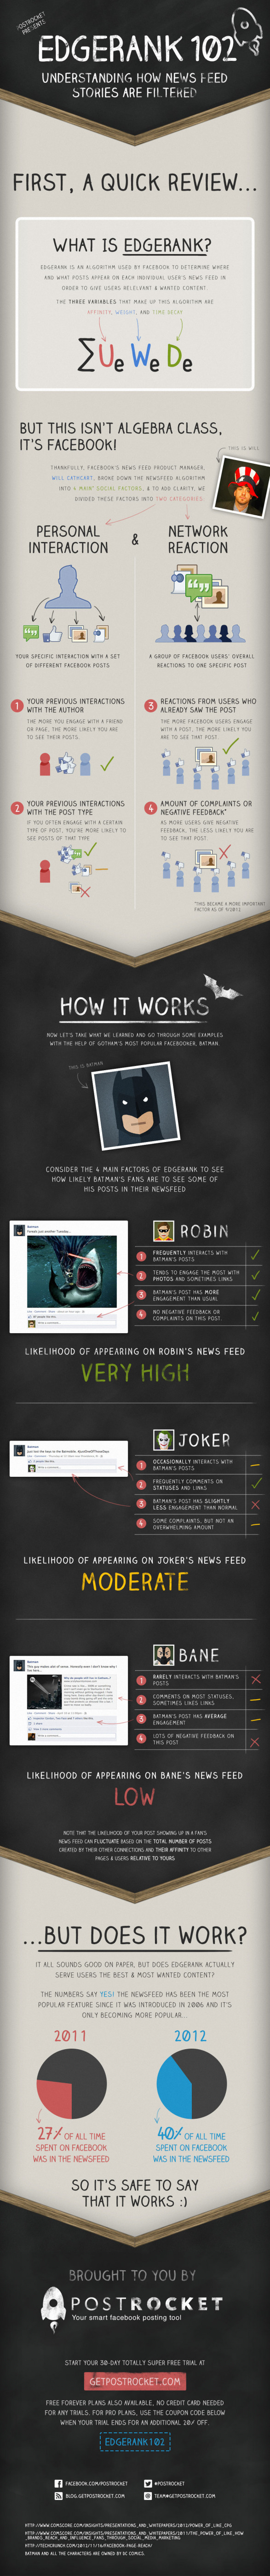 Facebook EdgeRank 102 - Understanding How News Feed Stories Are Filtered